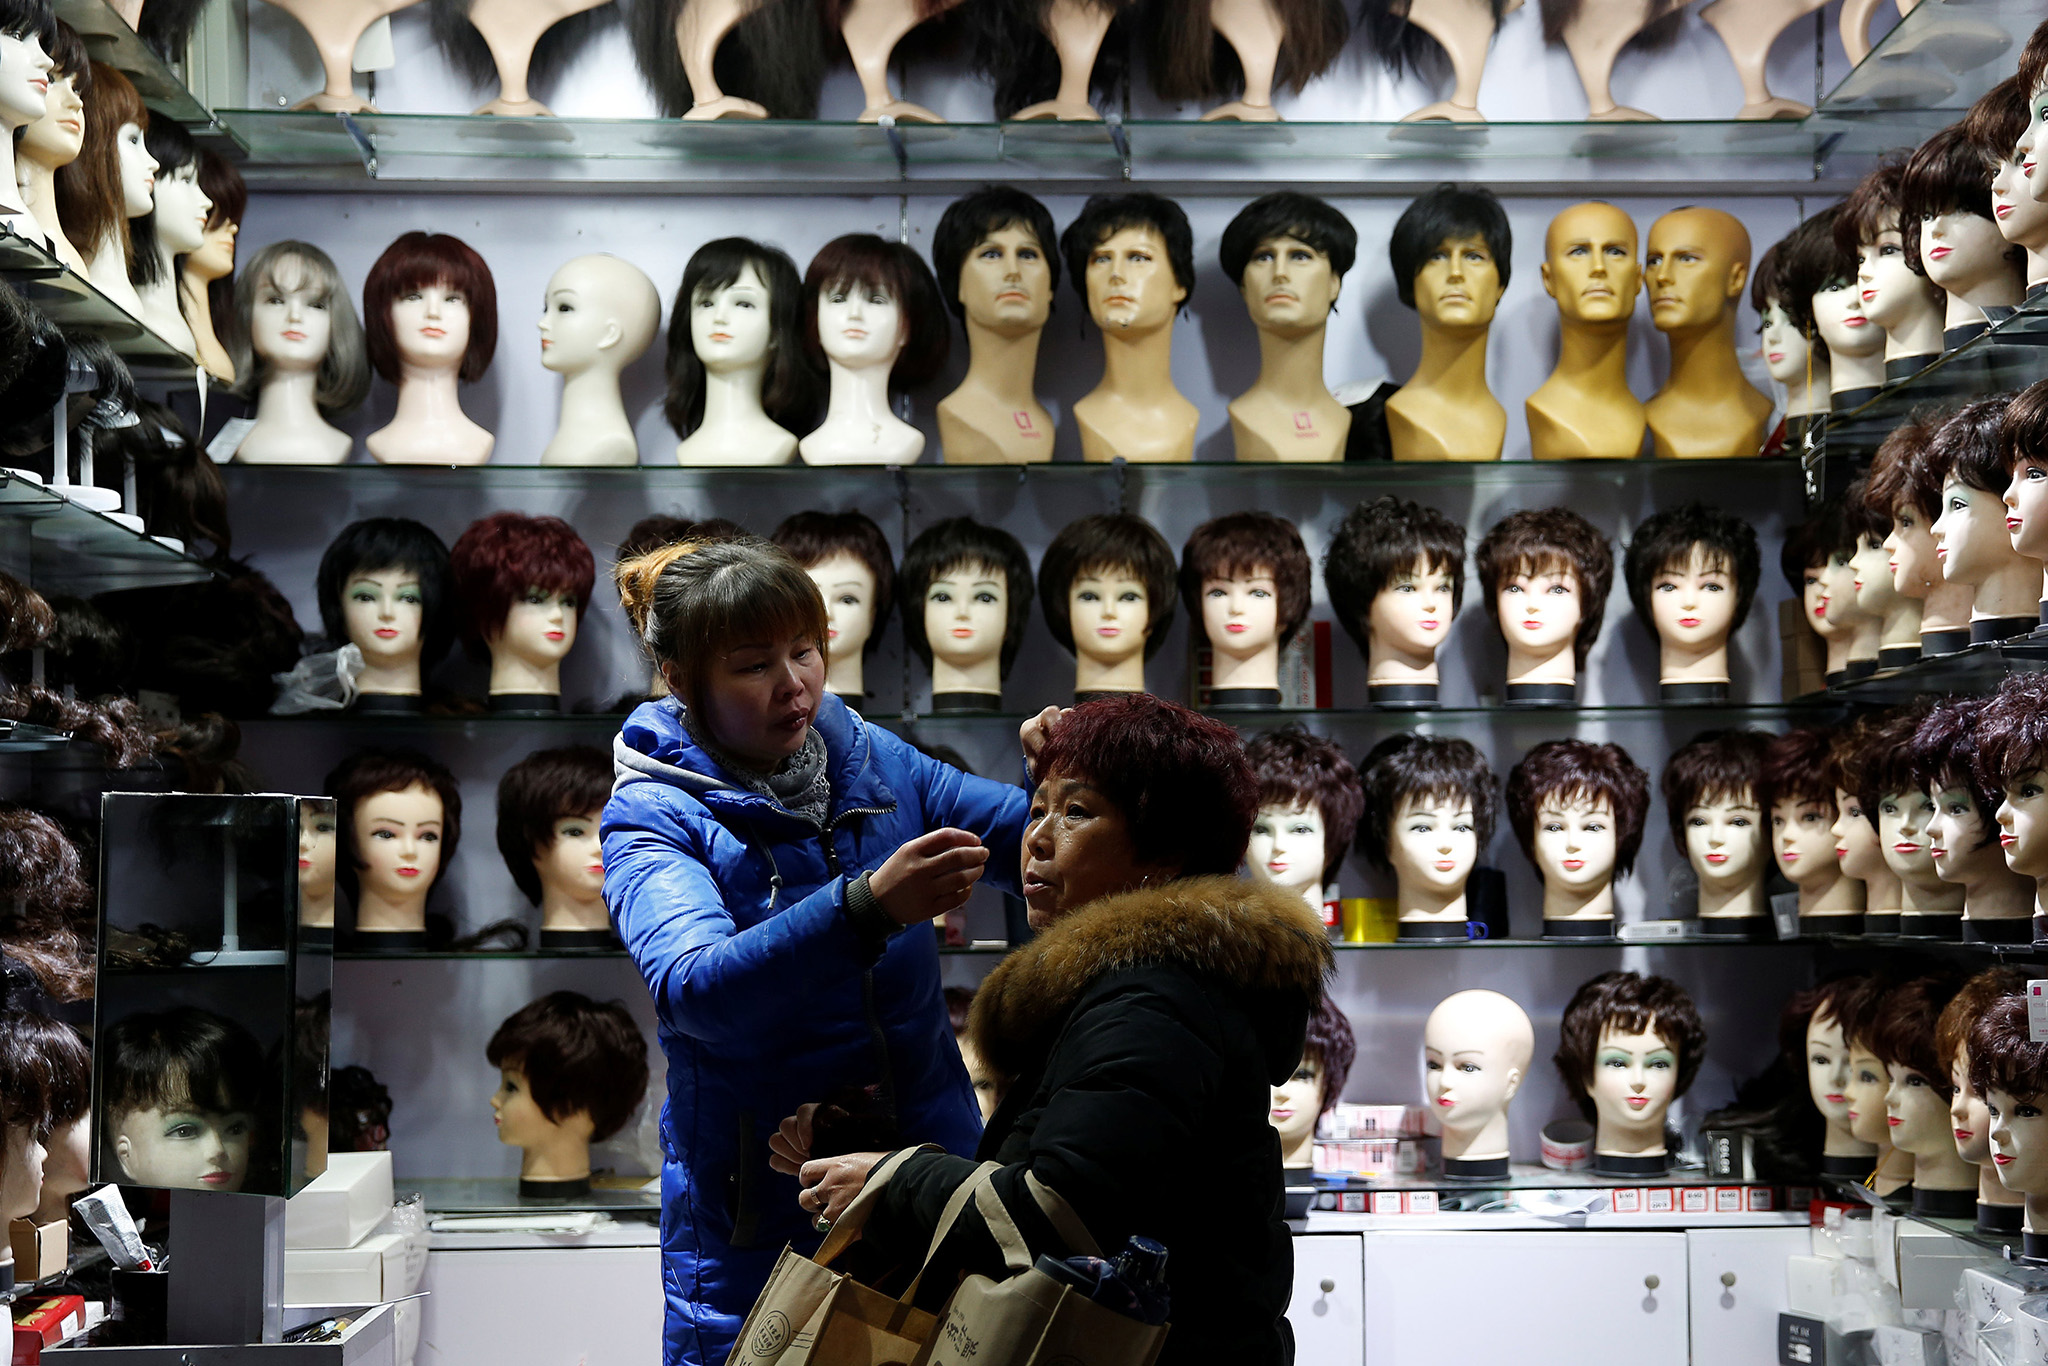 A vendor helps put on a wig on a customer at a wig shop near the central train station in Shanghai